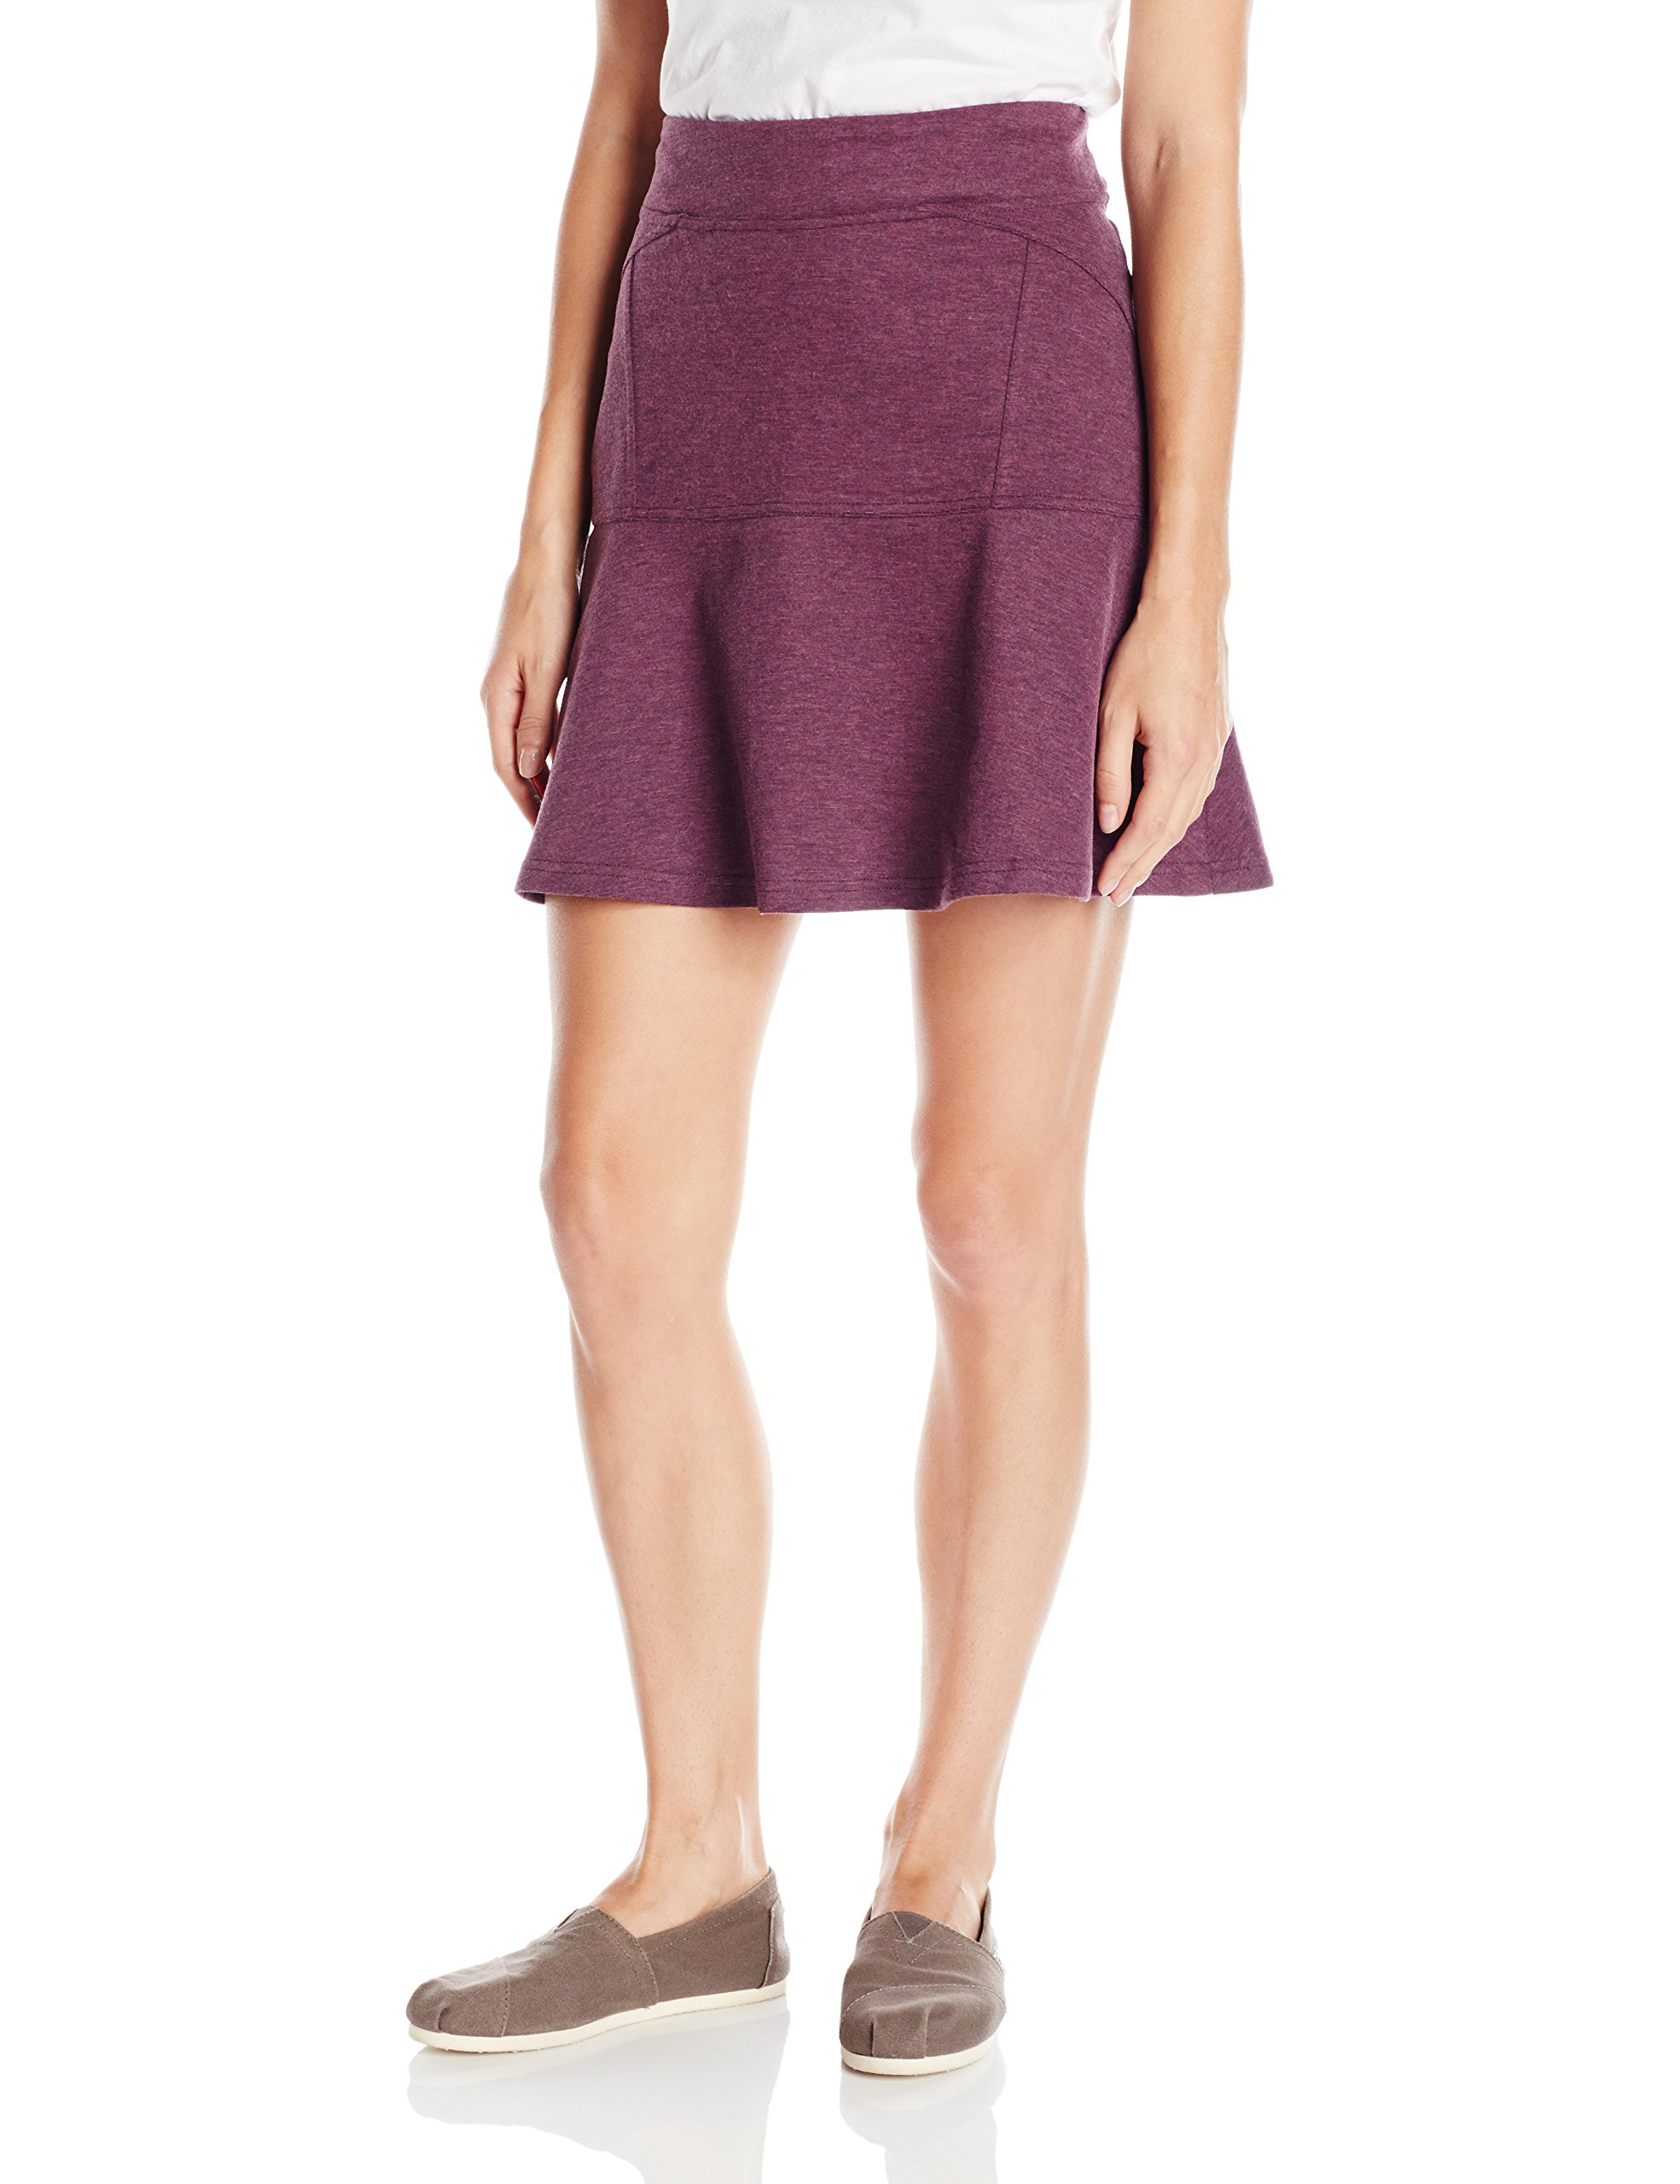 prAna Women's Gianna Skirt, Small, Wine